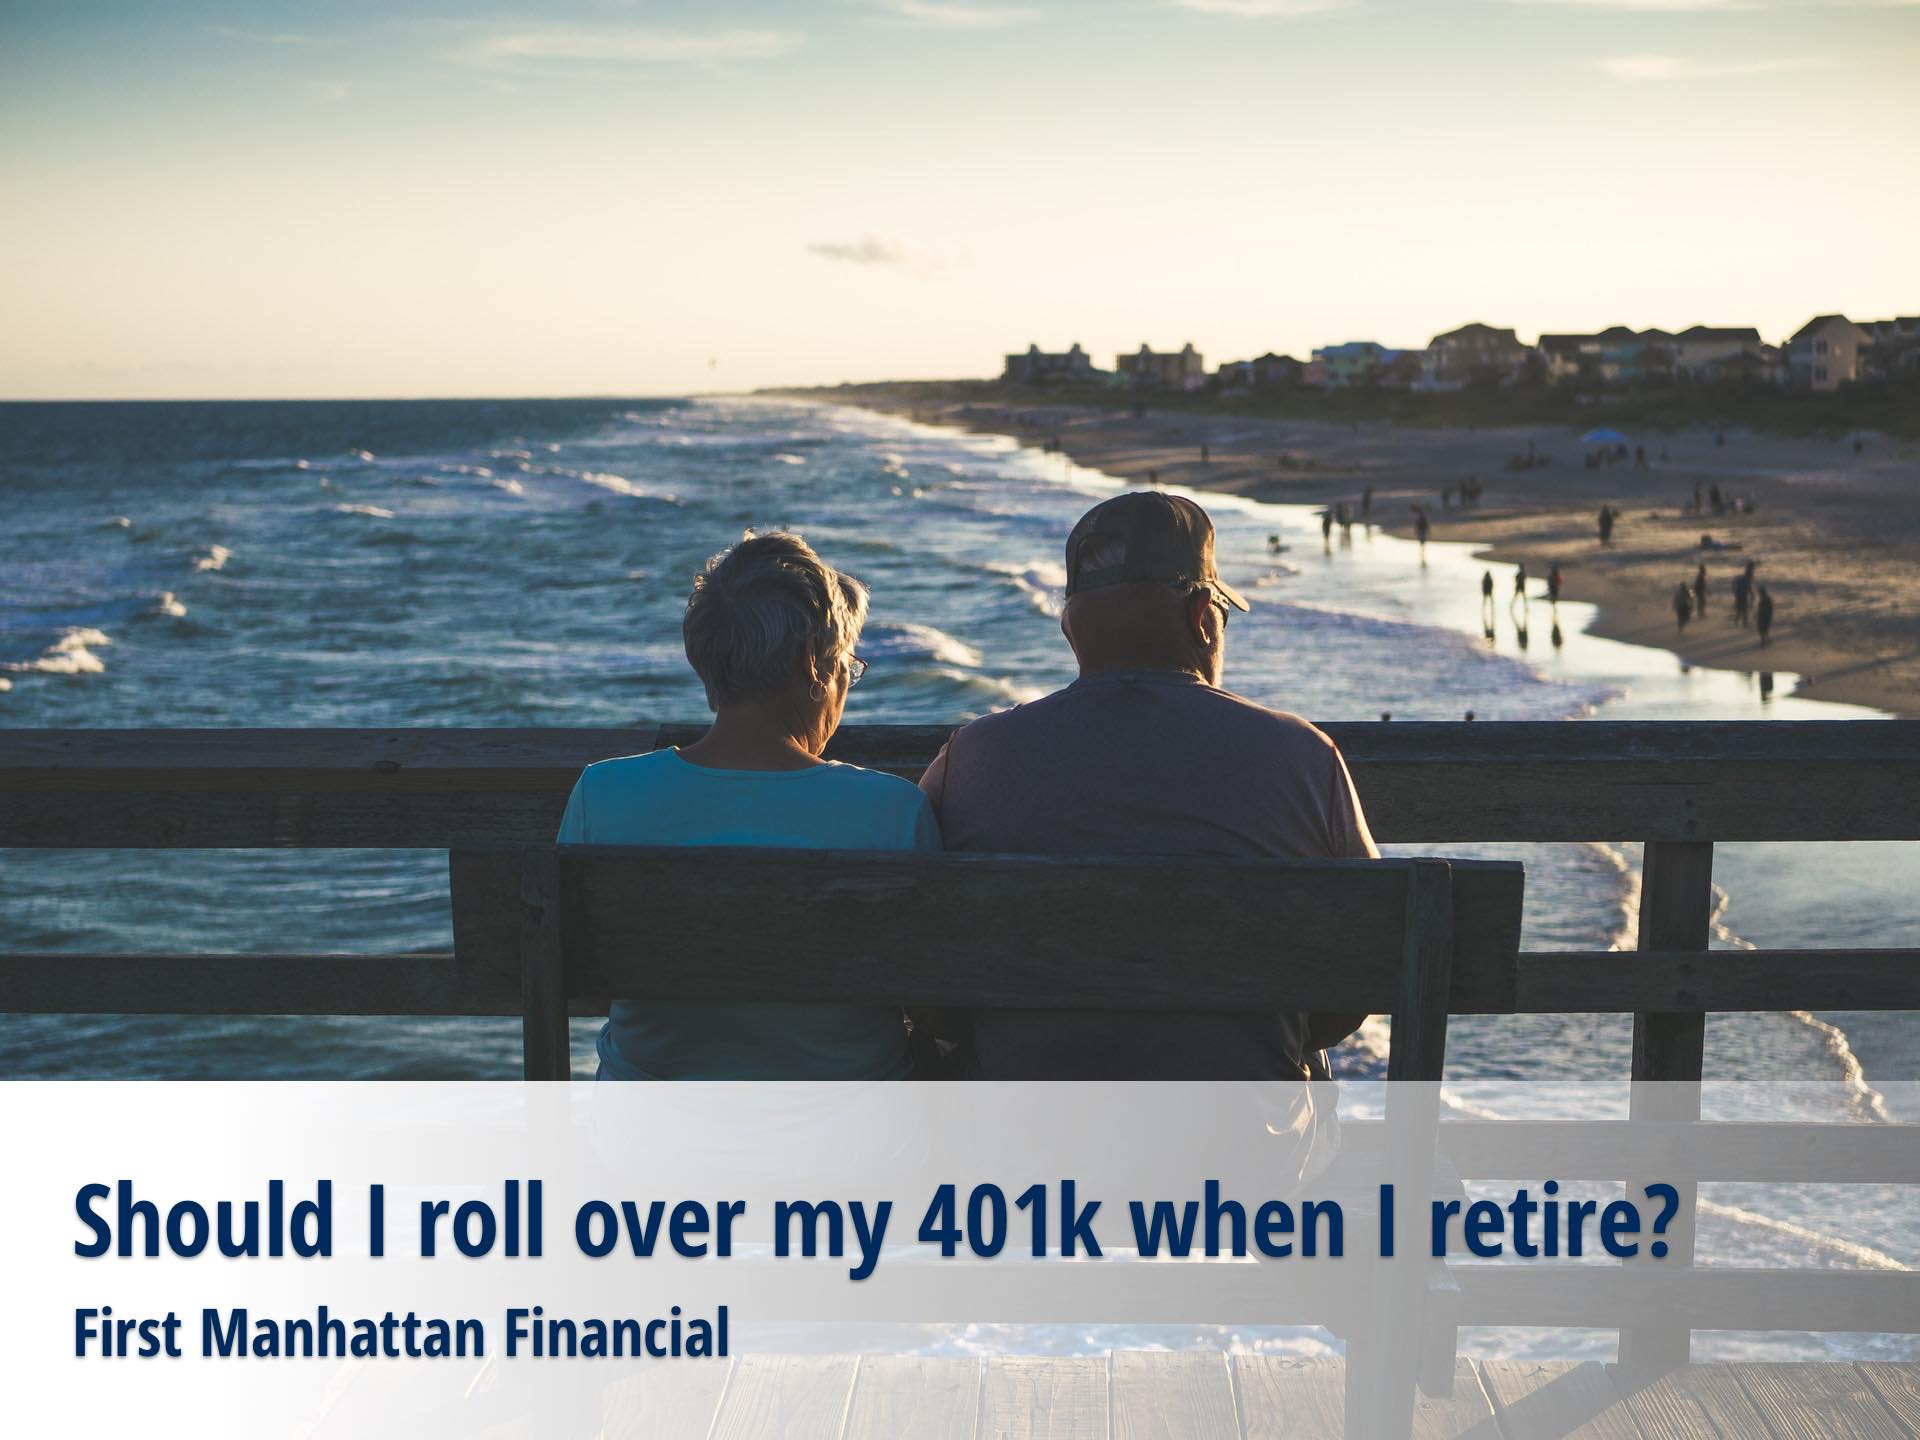 Should I roll over my 401k when I retire?